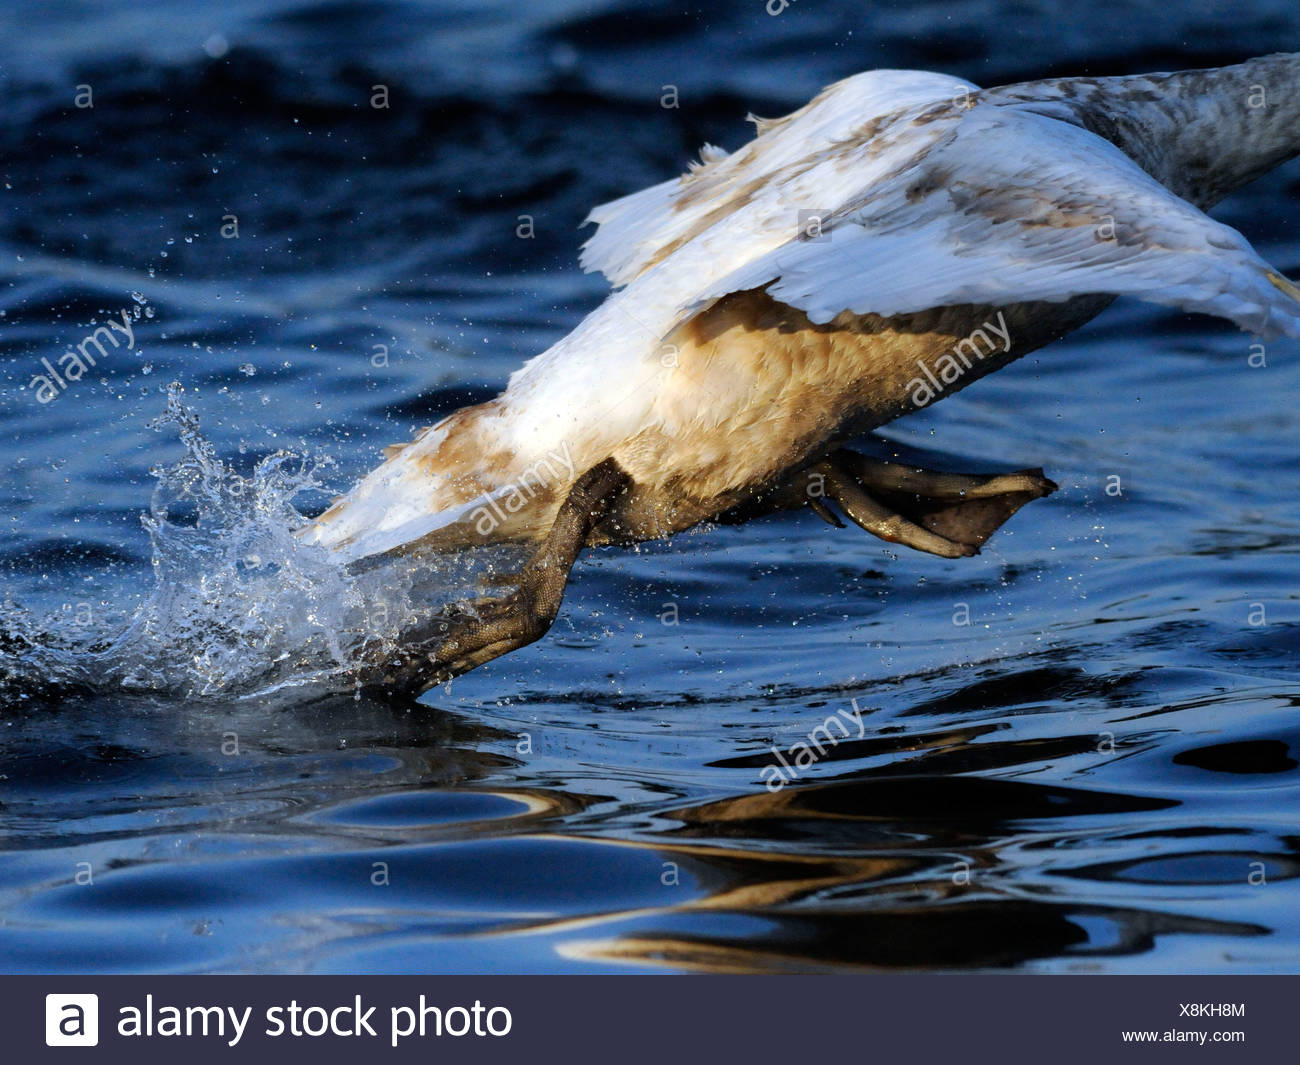 A young swan taking off from water. Stock Photo